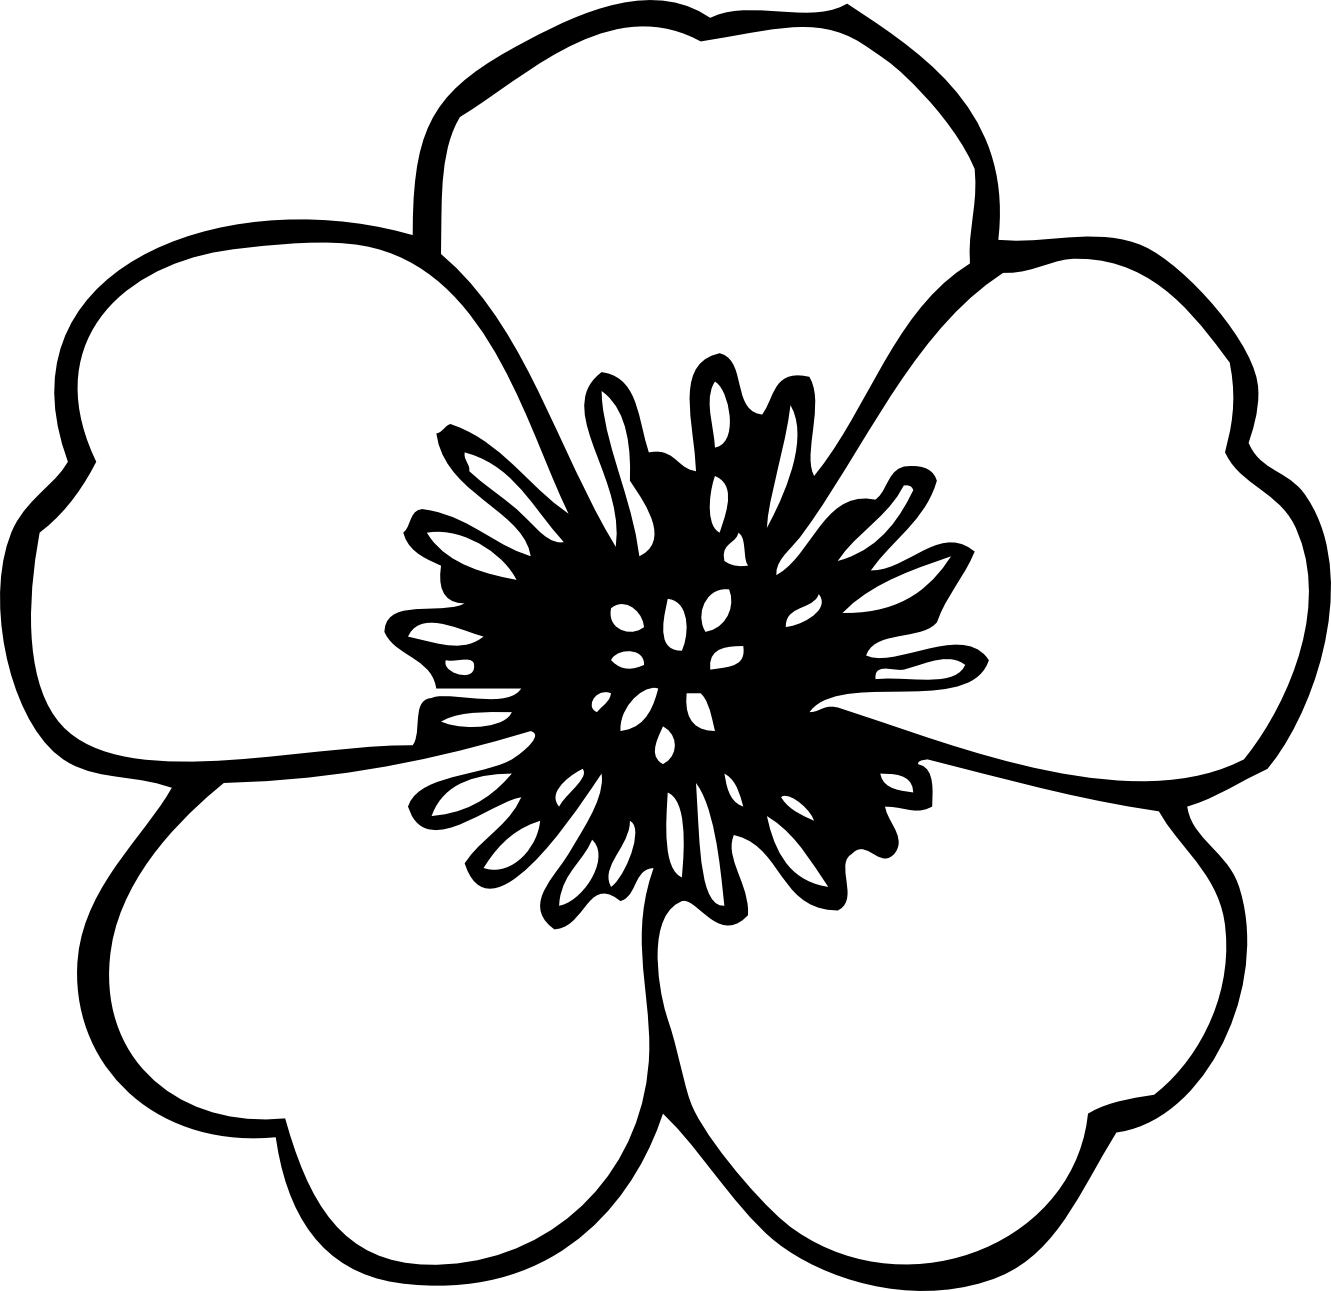 Free black & white flower clipart graphic Free Flower Images Black And White, Download Free Clip Art, Free ... graphic